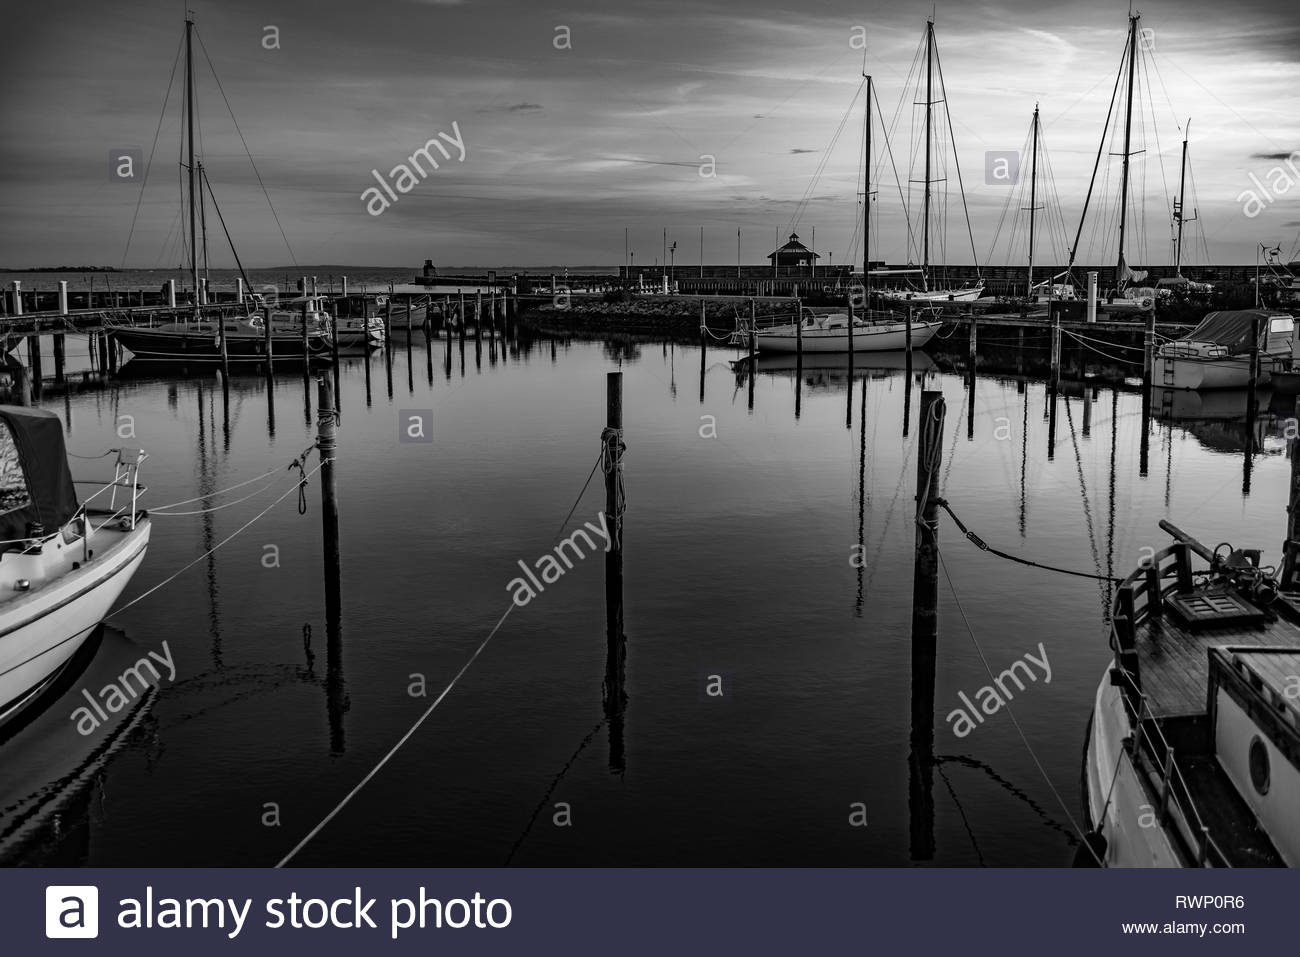 Windless evening, Lynaes harbour, Denmark - Stock Image